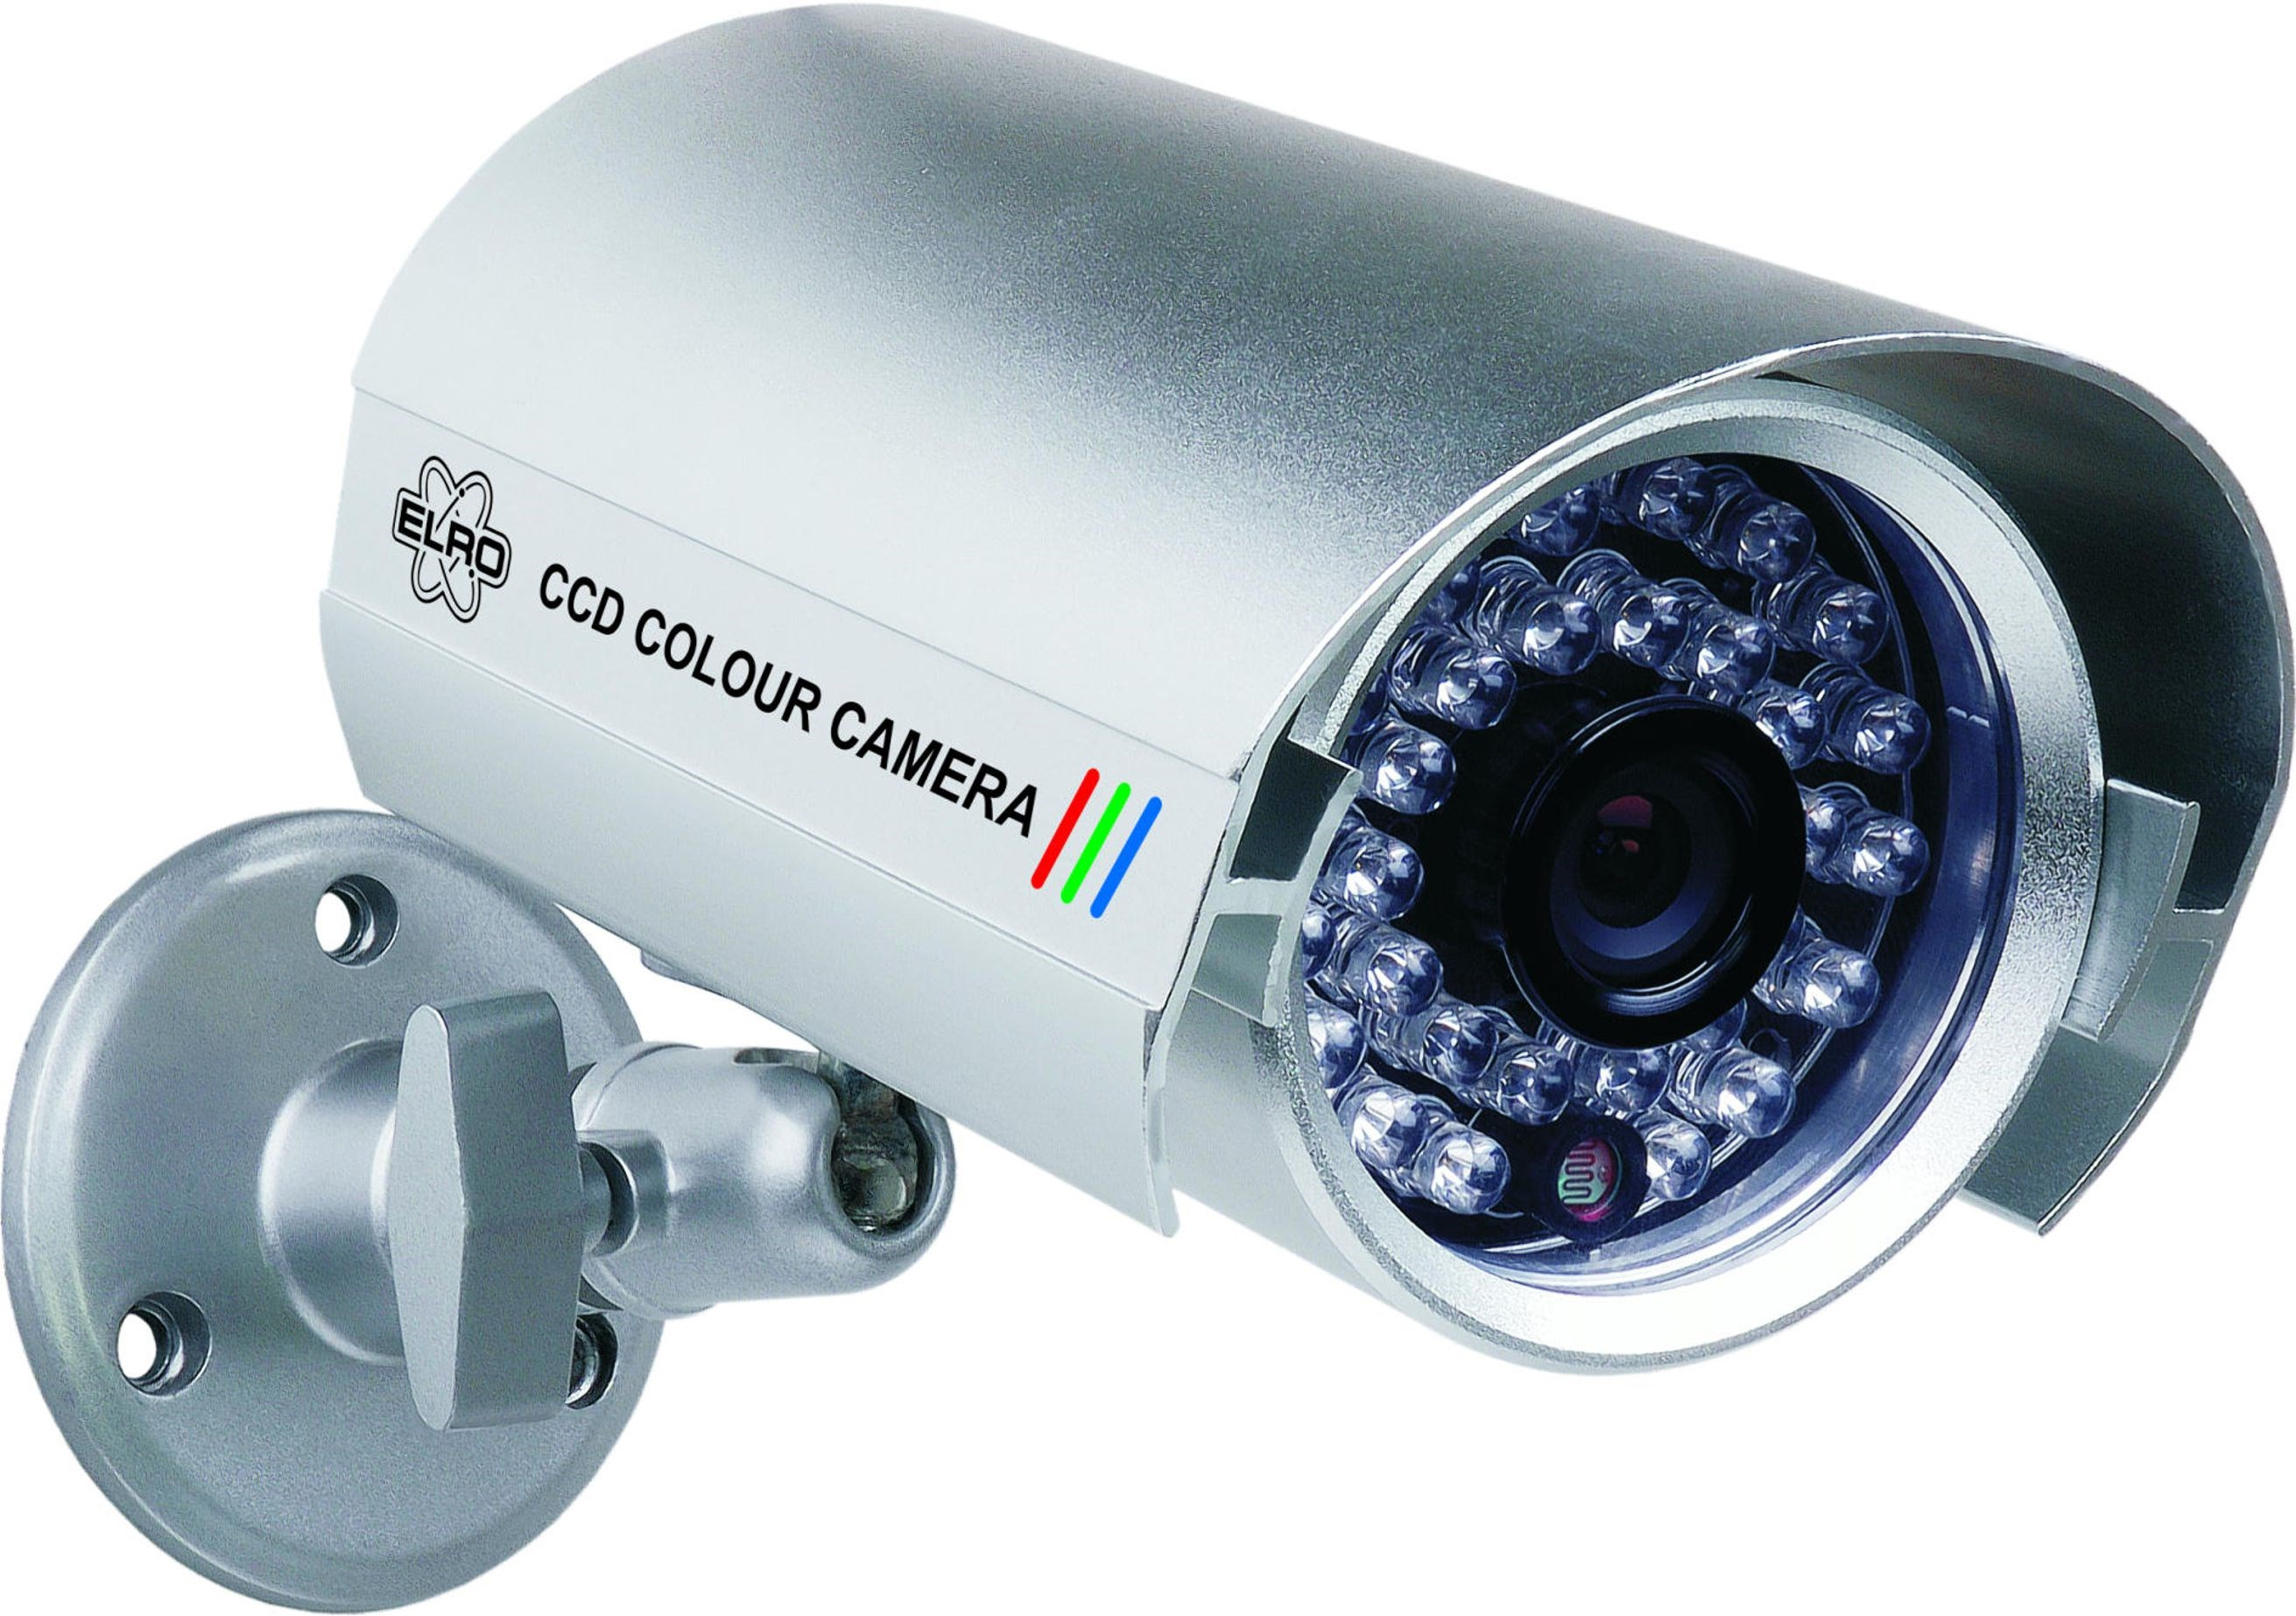 elro wired ccd colour security camera with 30 infrared leds